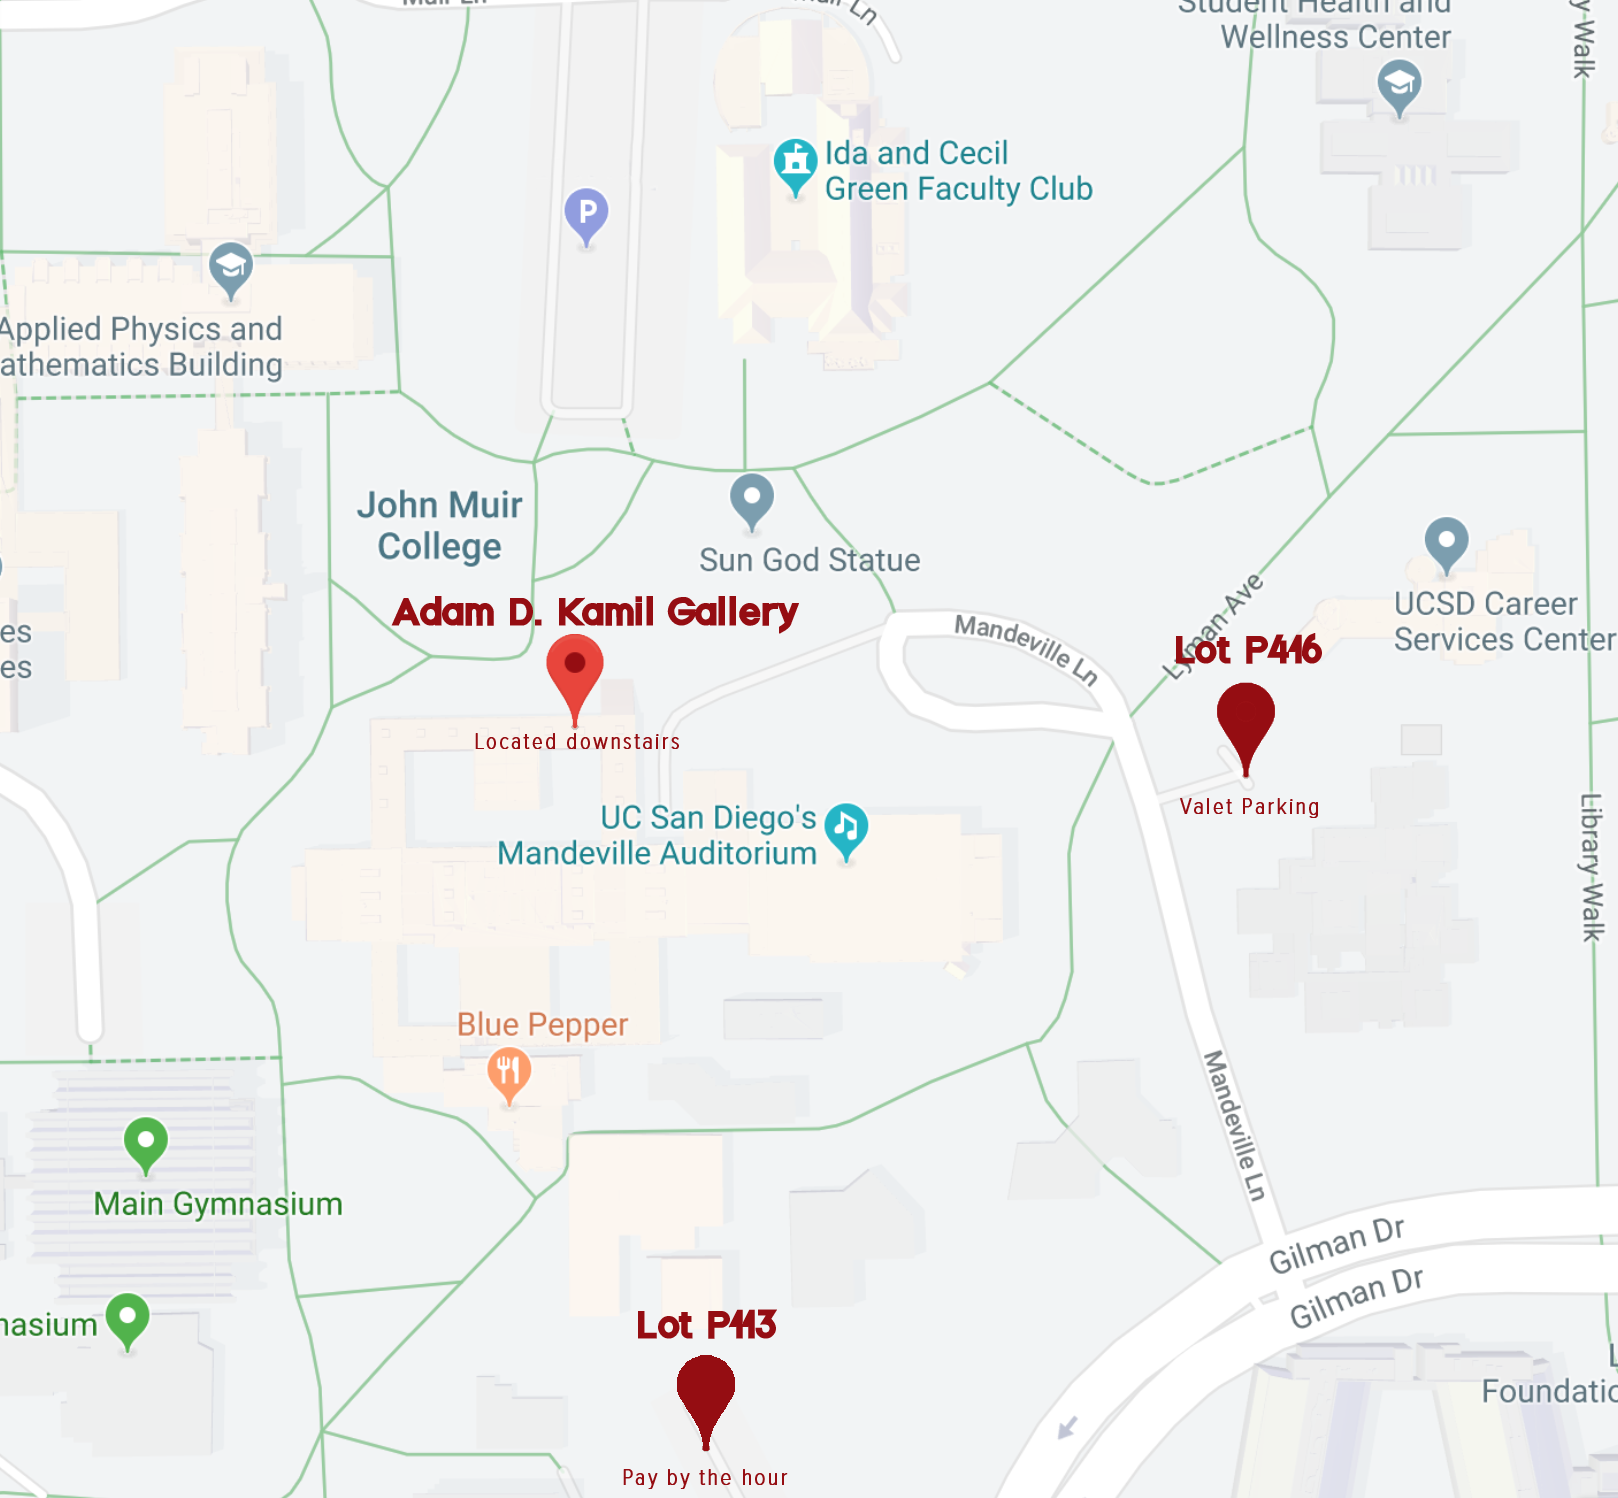 Directions and Parking - Parking on campuses limited and requires daily or hourly permits that may be purchased. Other suggestions include parking off campus and taking a Lyft or the 201 MTS Superloop bus route.